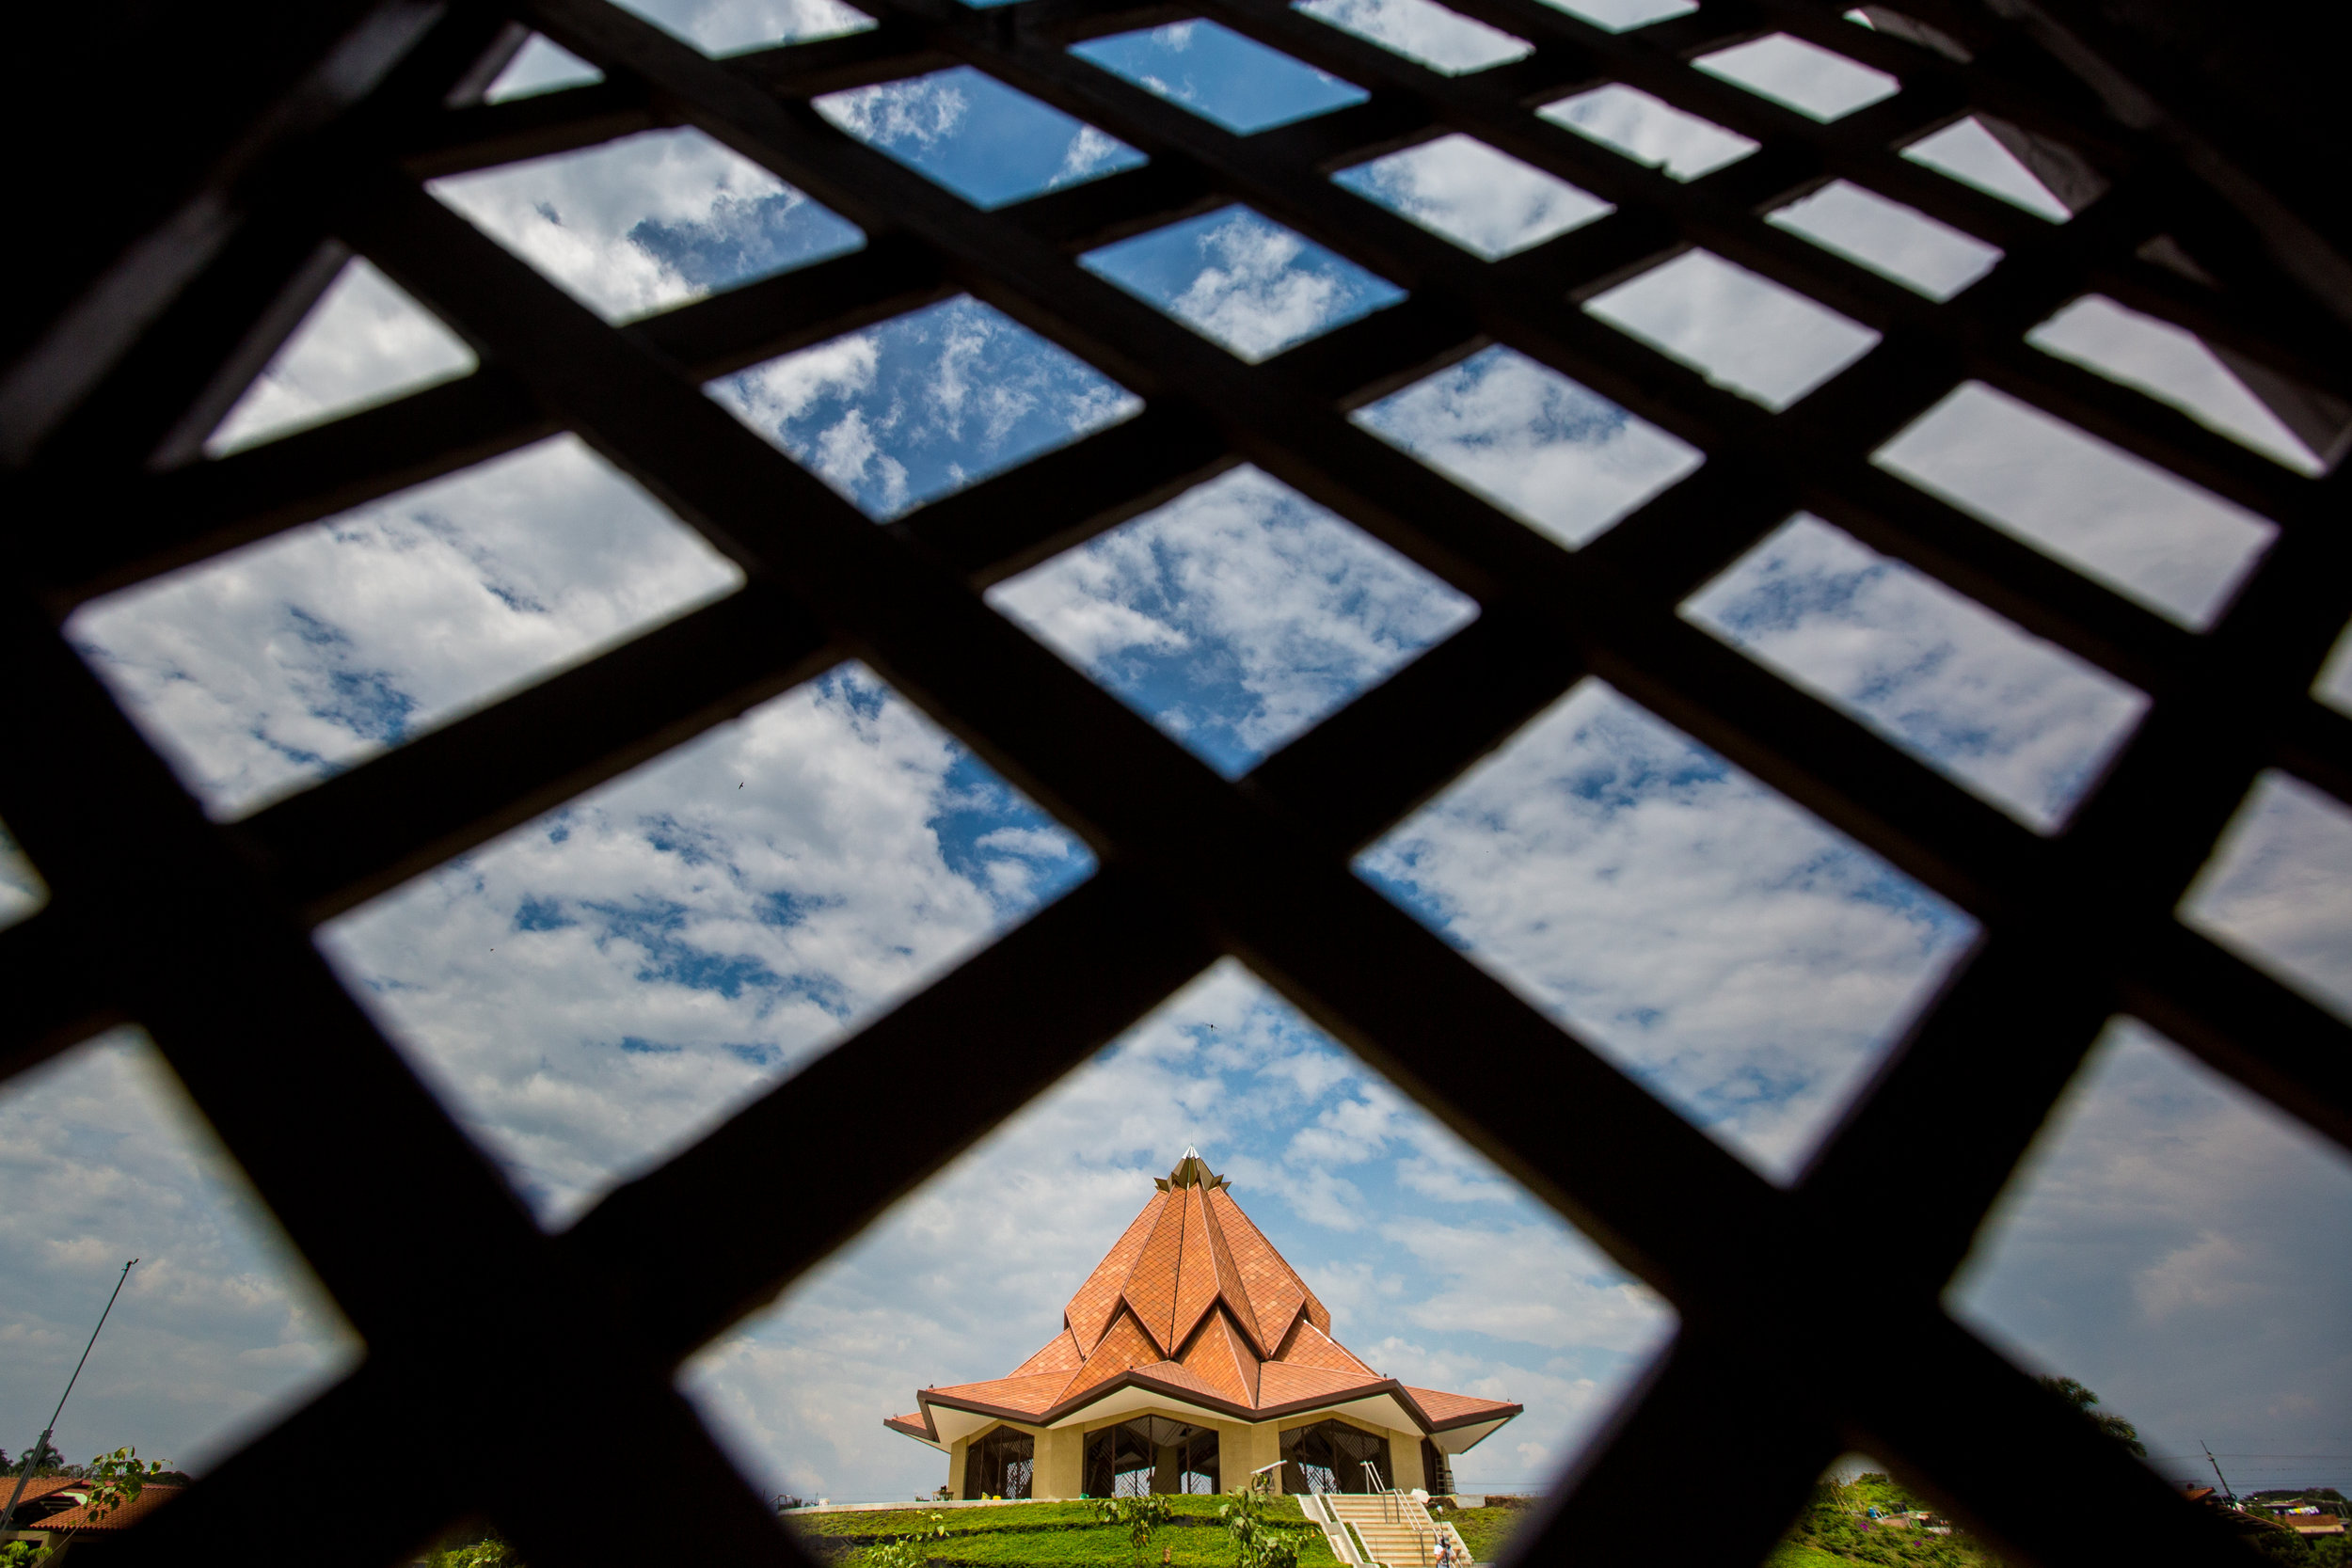 This view shows the Colombia Temple from an ancillary building.